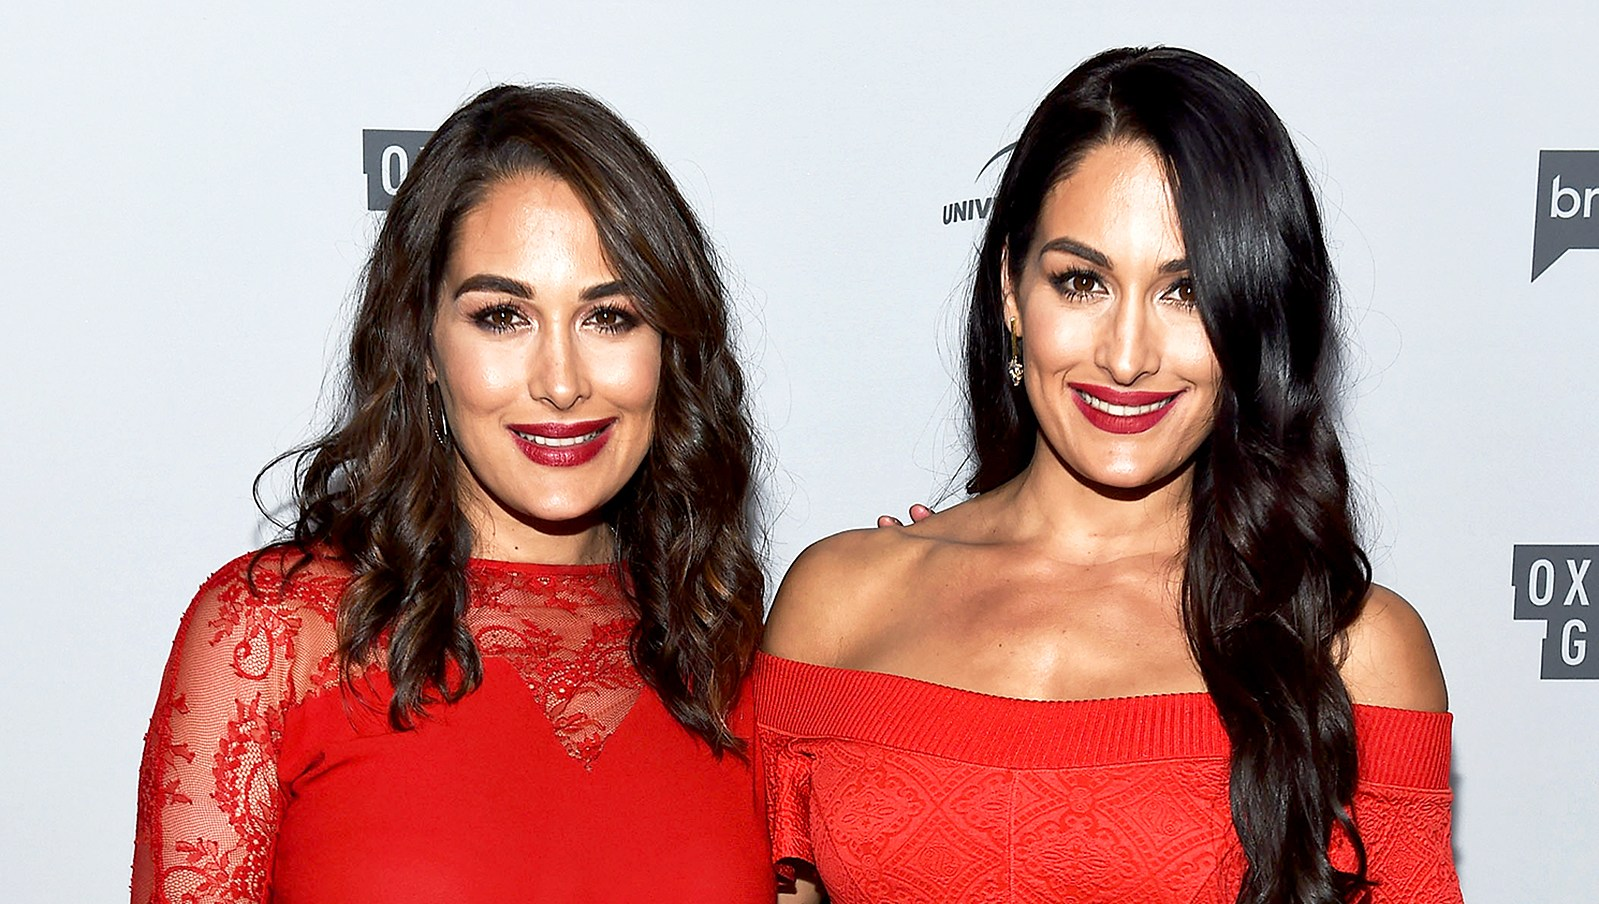 Brie Bella and Nikki Bella arrive at NBCUniversal's Press Junket at Beauty & Essex on November 13, 2017 in Los Angeles, California.